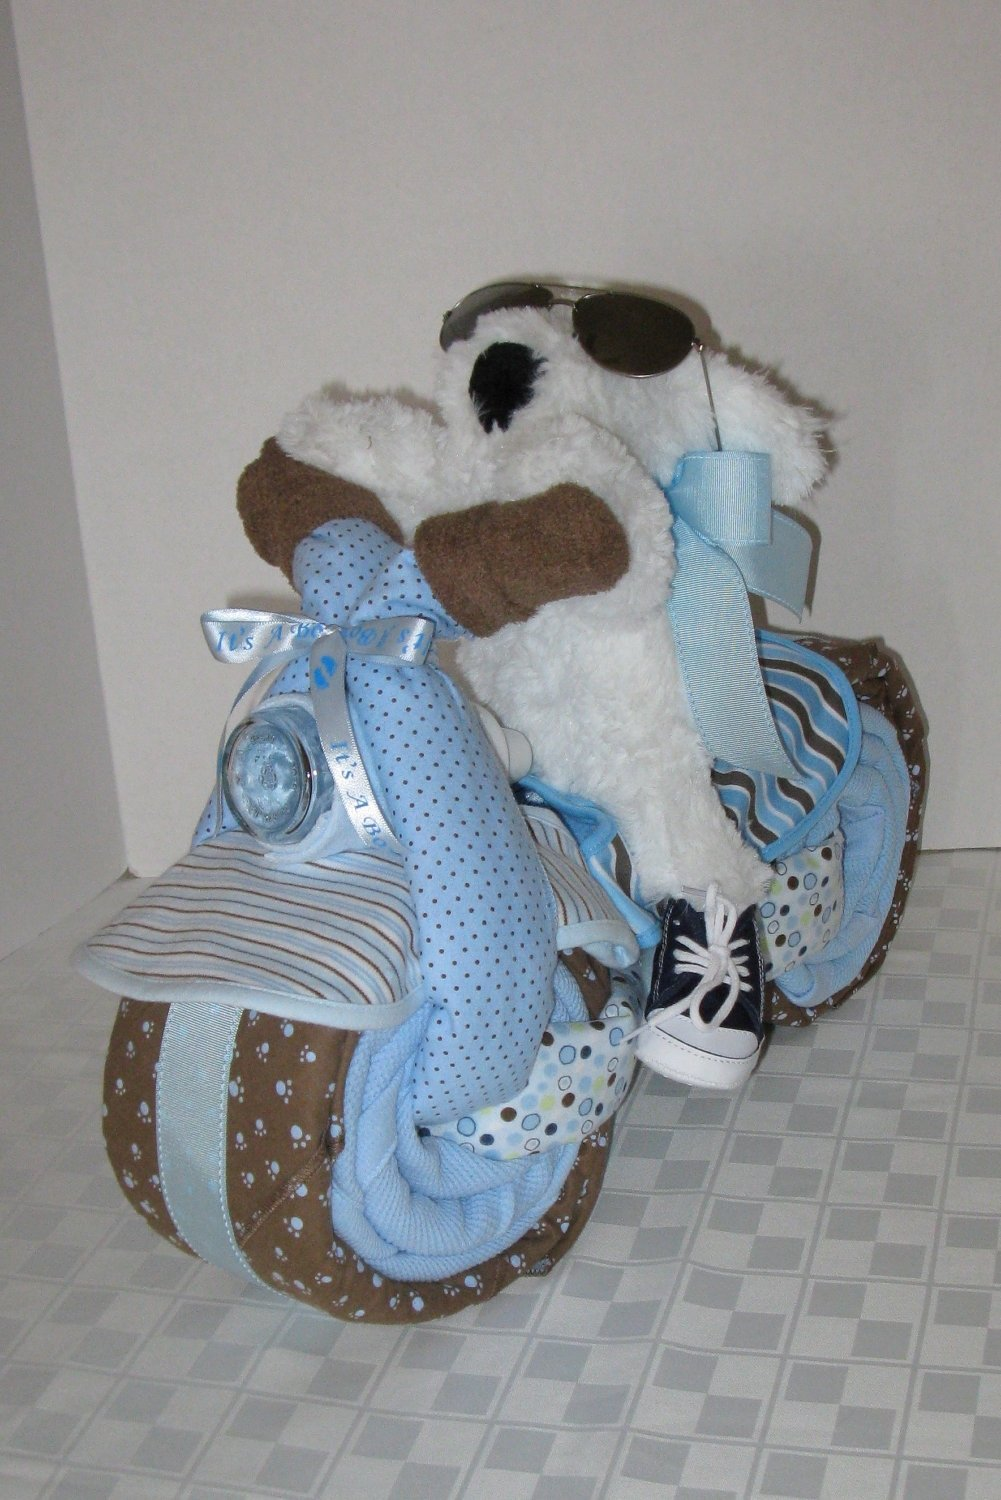 10 Cute Diaper Cake Ideas For Baby Boy baby shower diaper cake ideas omega center ideas for baby